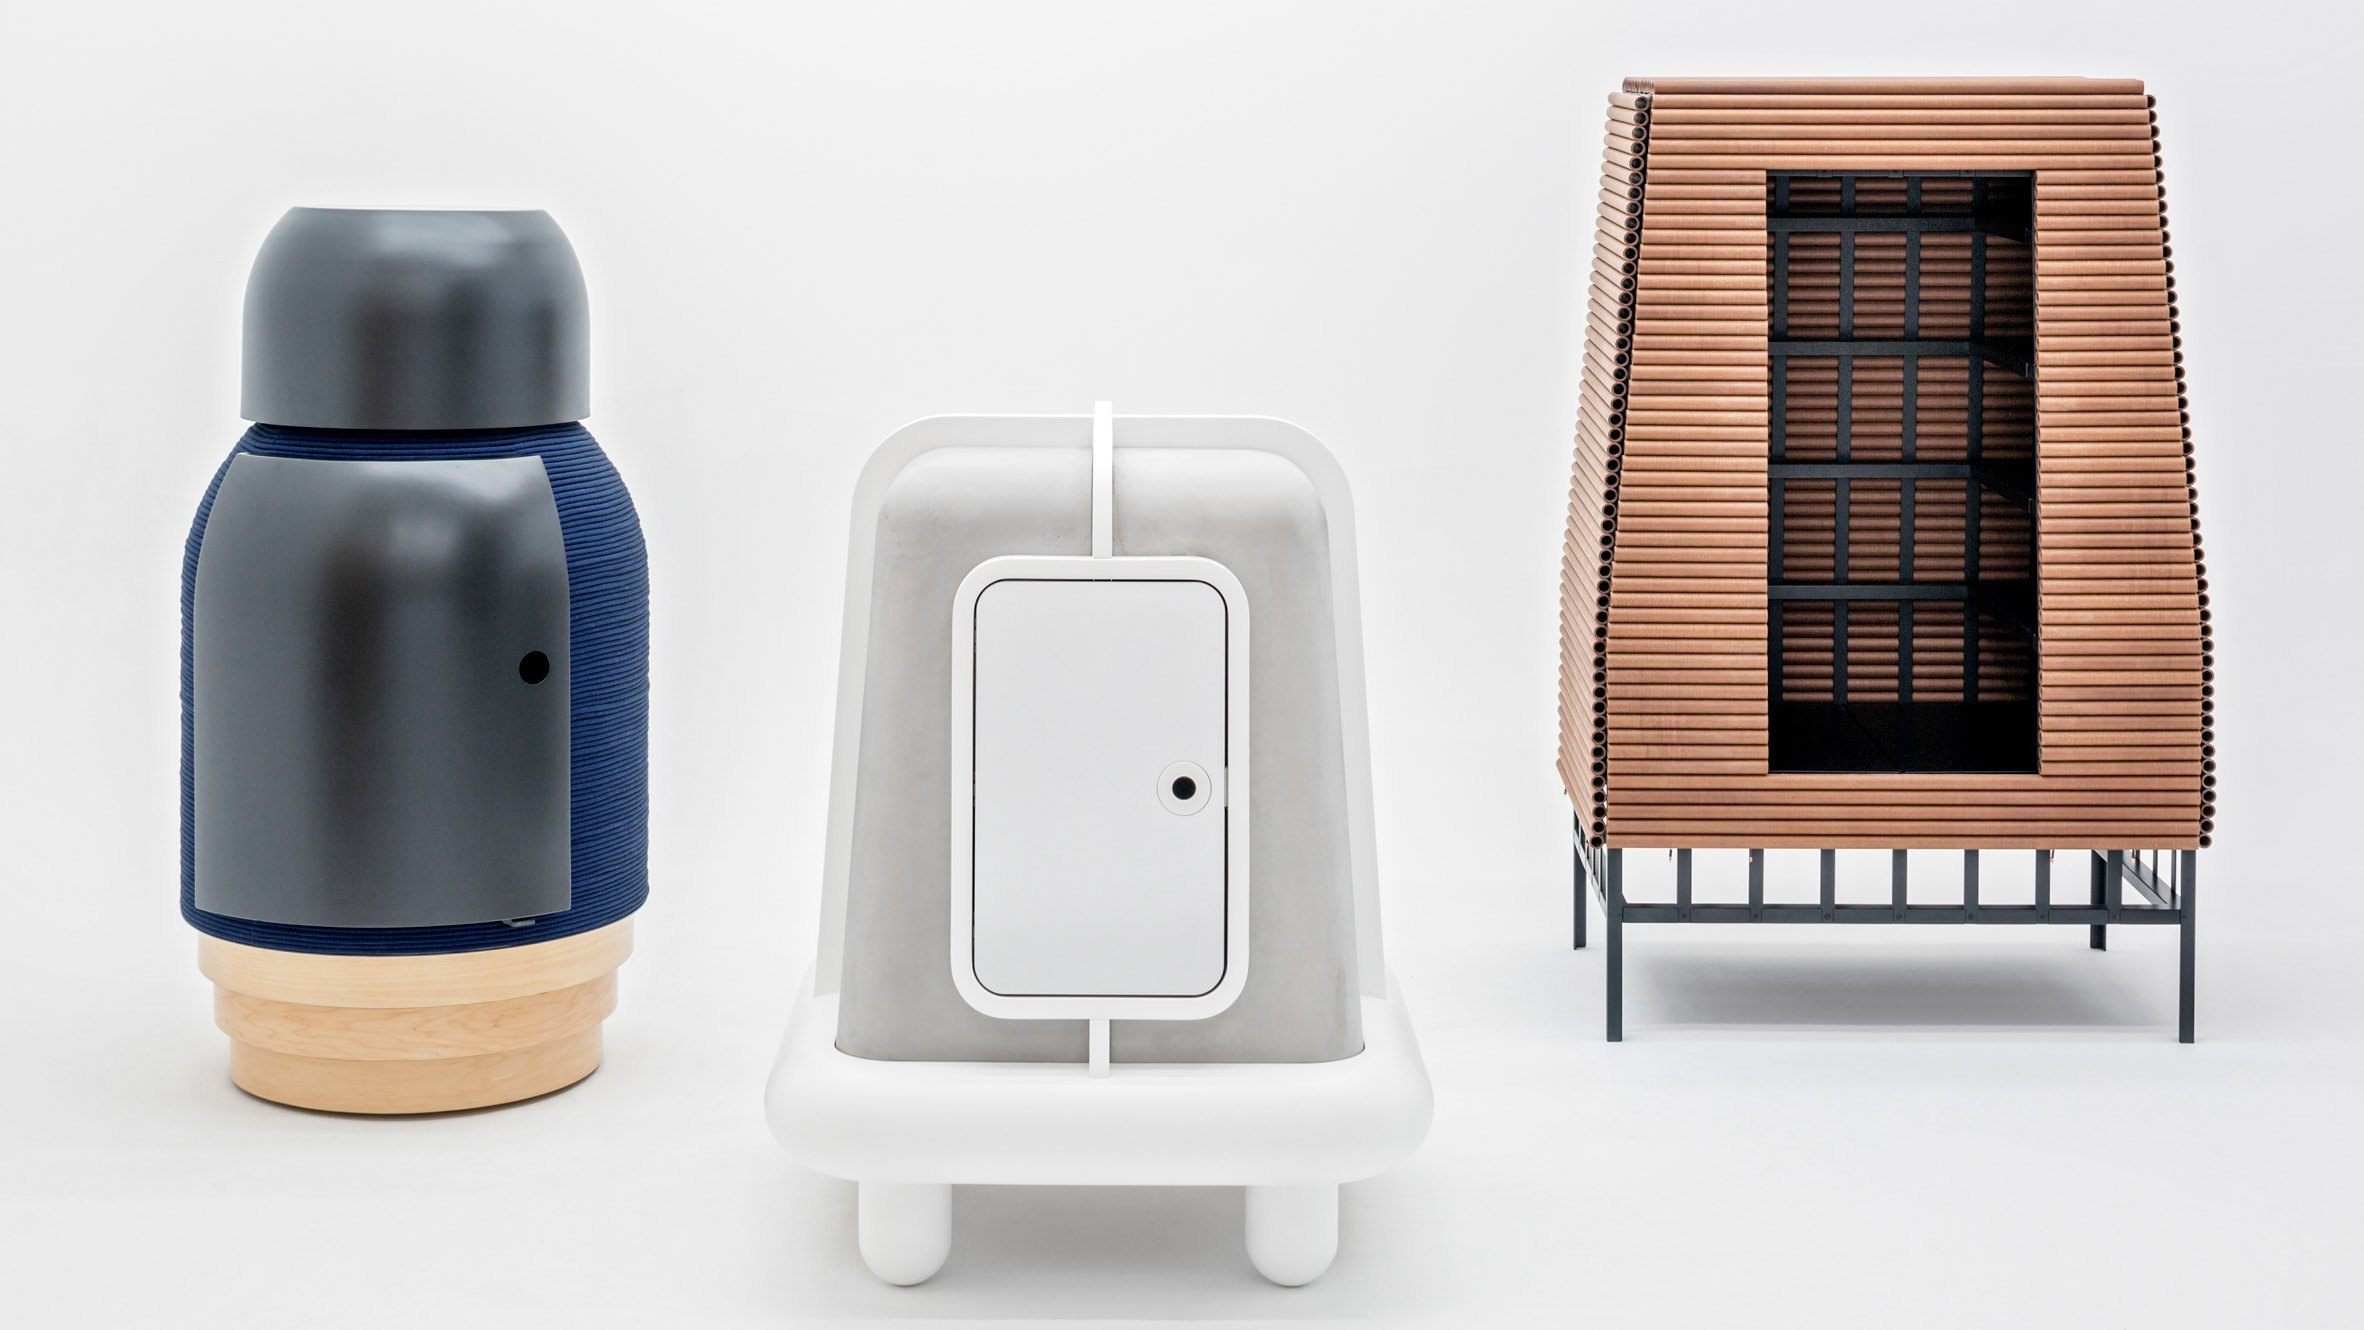 Ultraframe furniture collection features unique storage pieces with eye catchy design